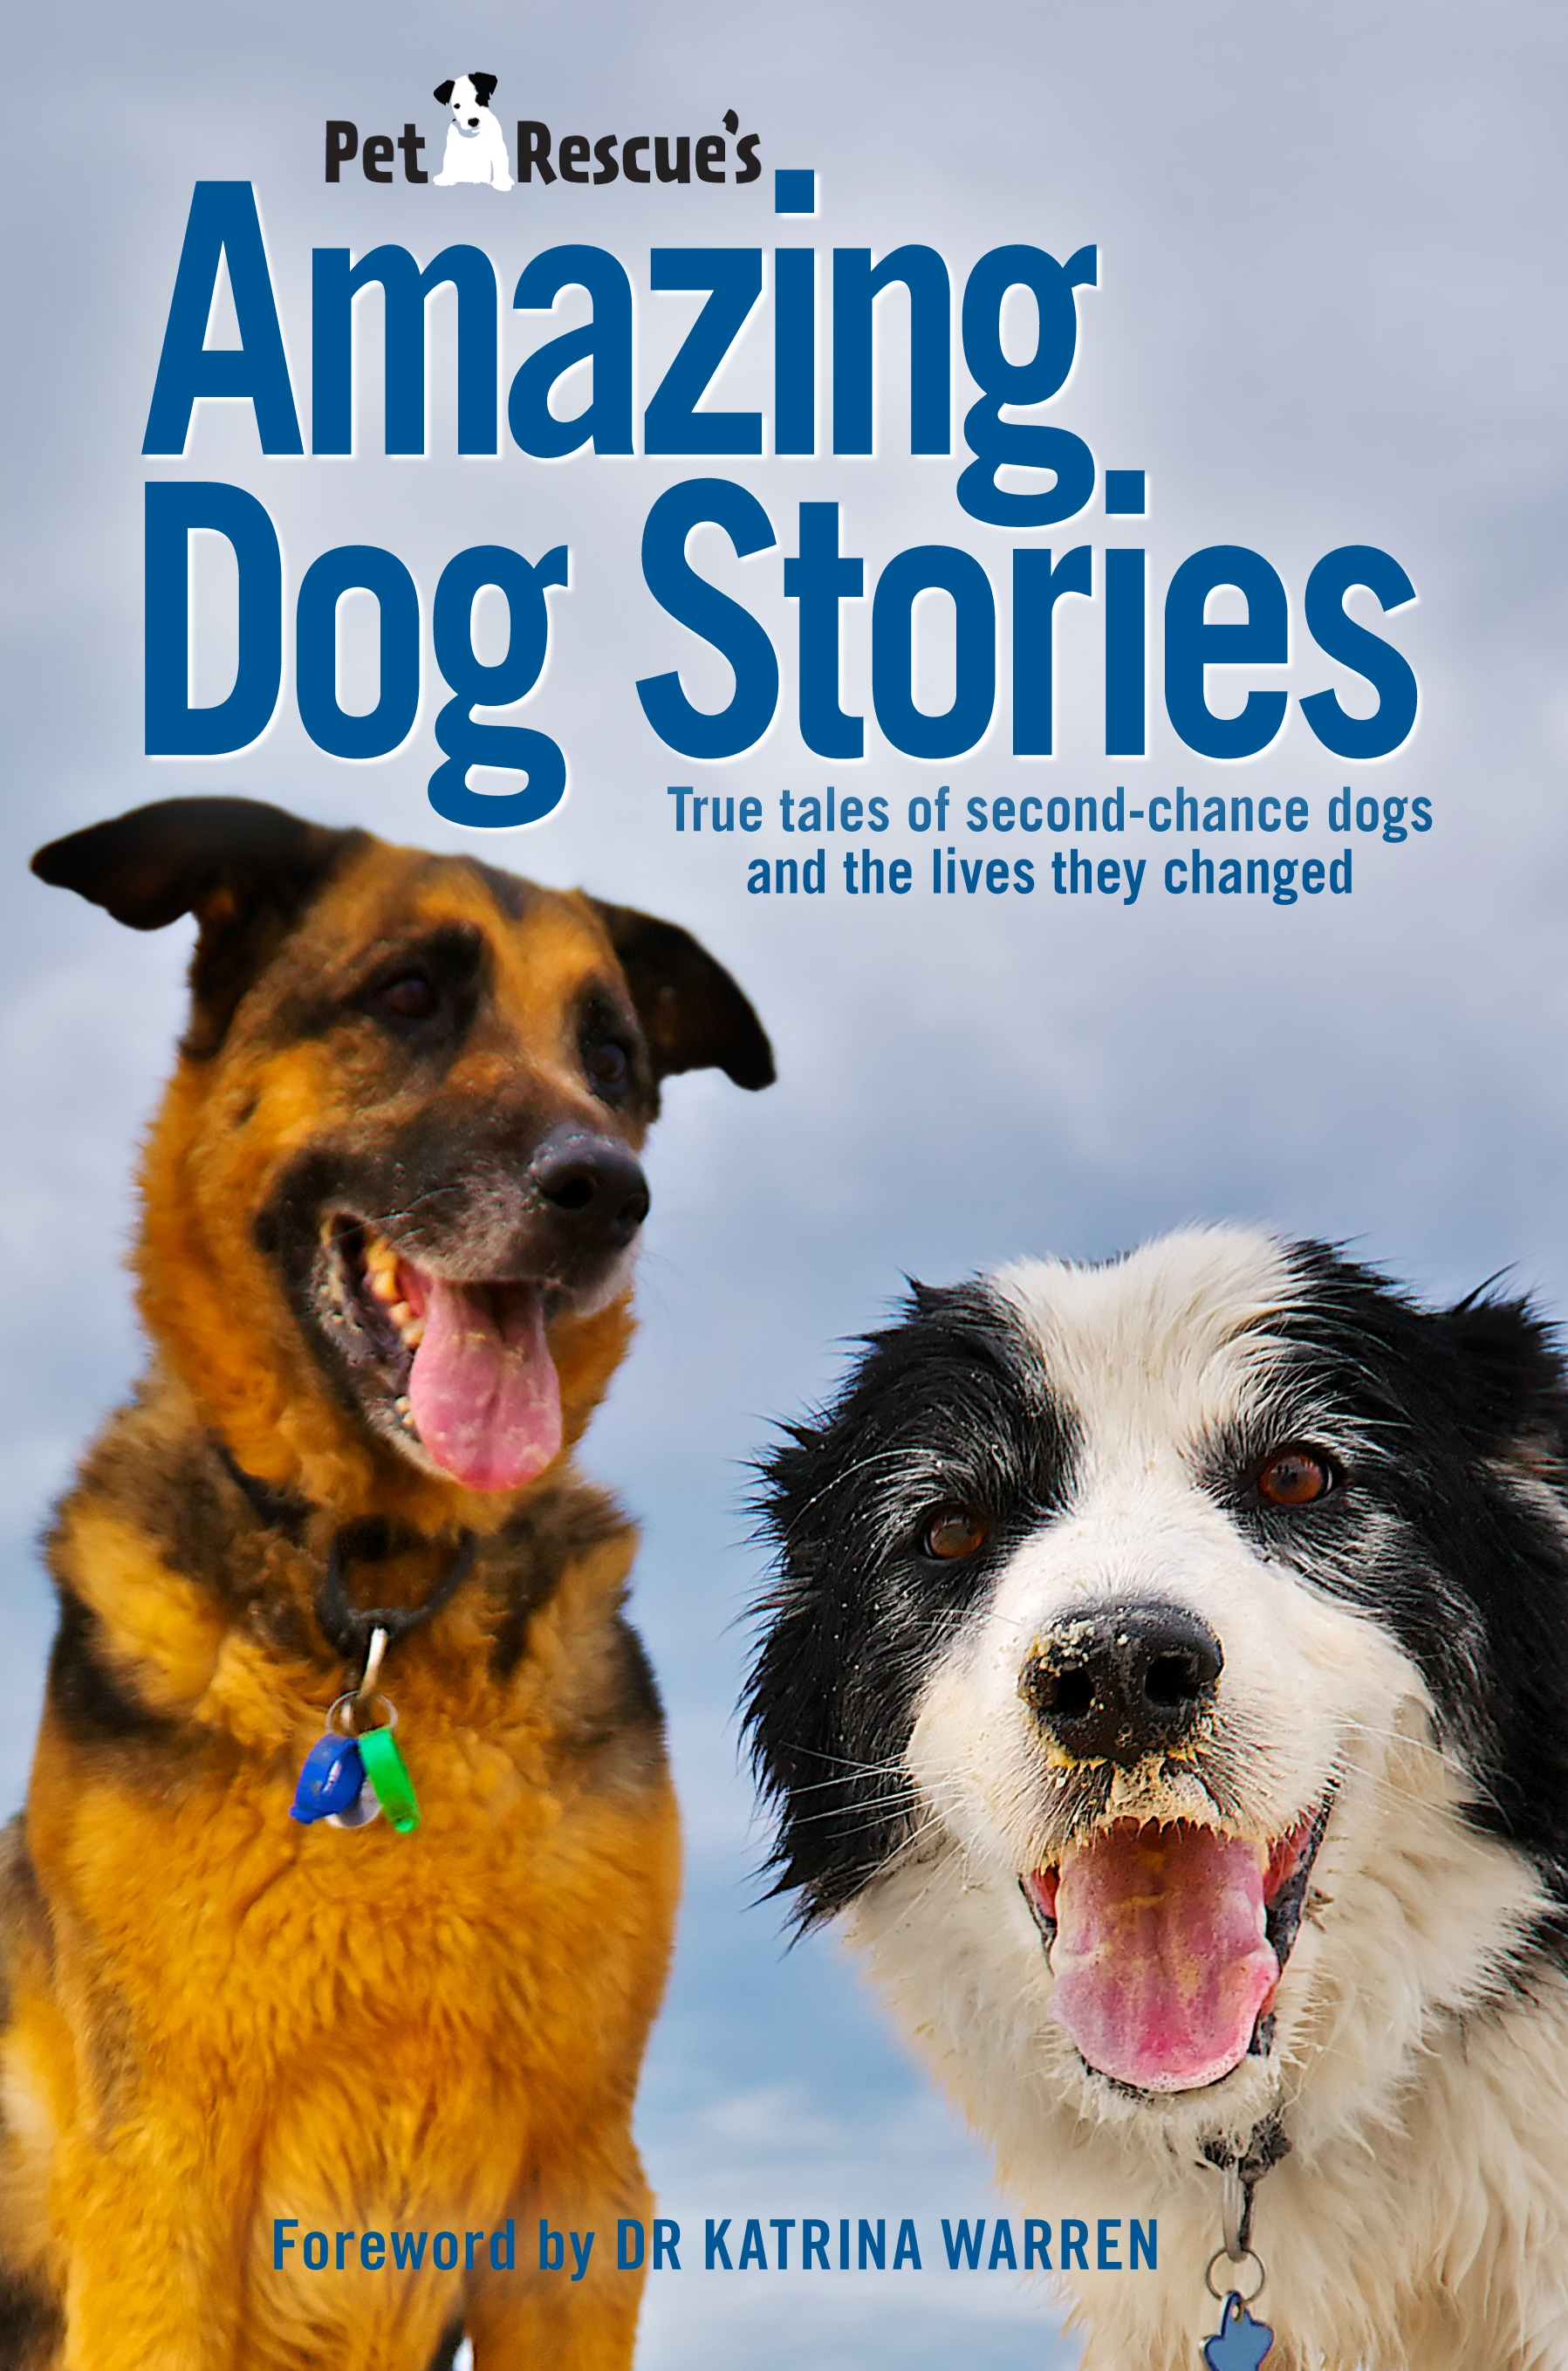 Animal Fiction Books Rights About Non